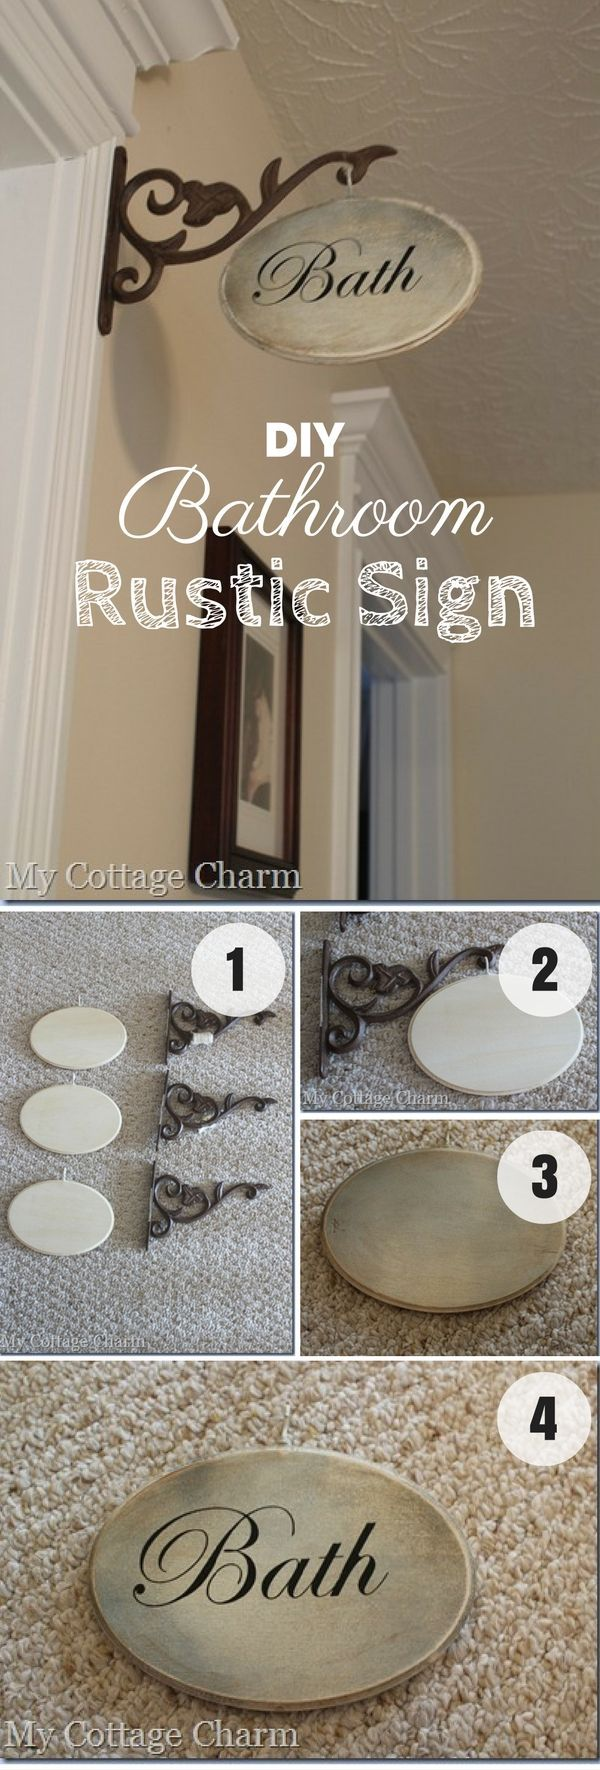 Diy Bathroom Decor 25 Best Ideas About Diy Bathroom Decor On Pinterest Small